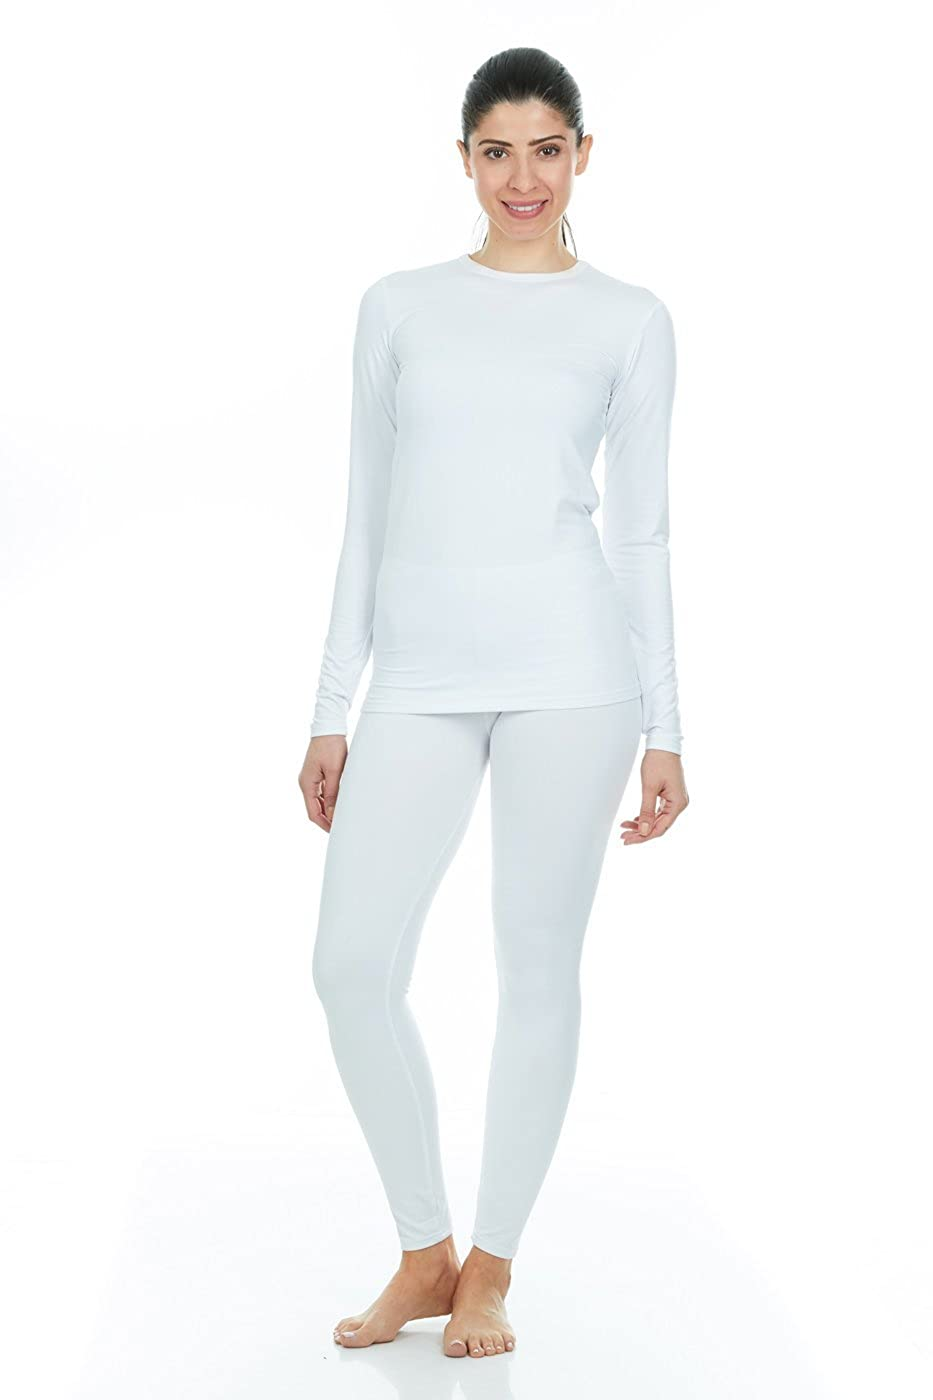 121e4f55129 2 Piece womens thermal set - these ladies long johns are ultra soft